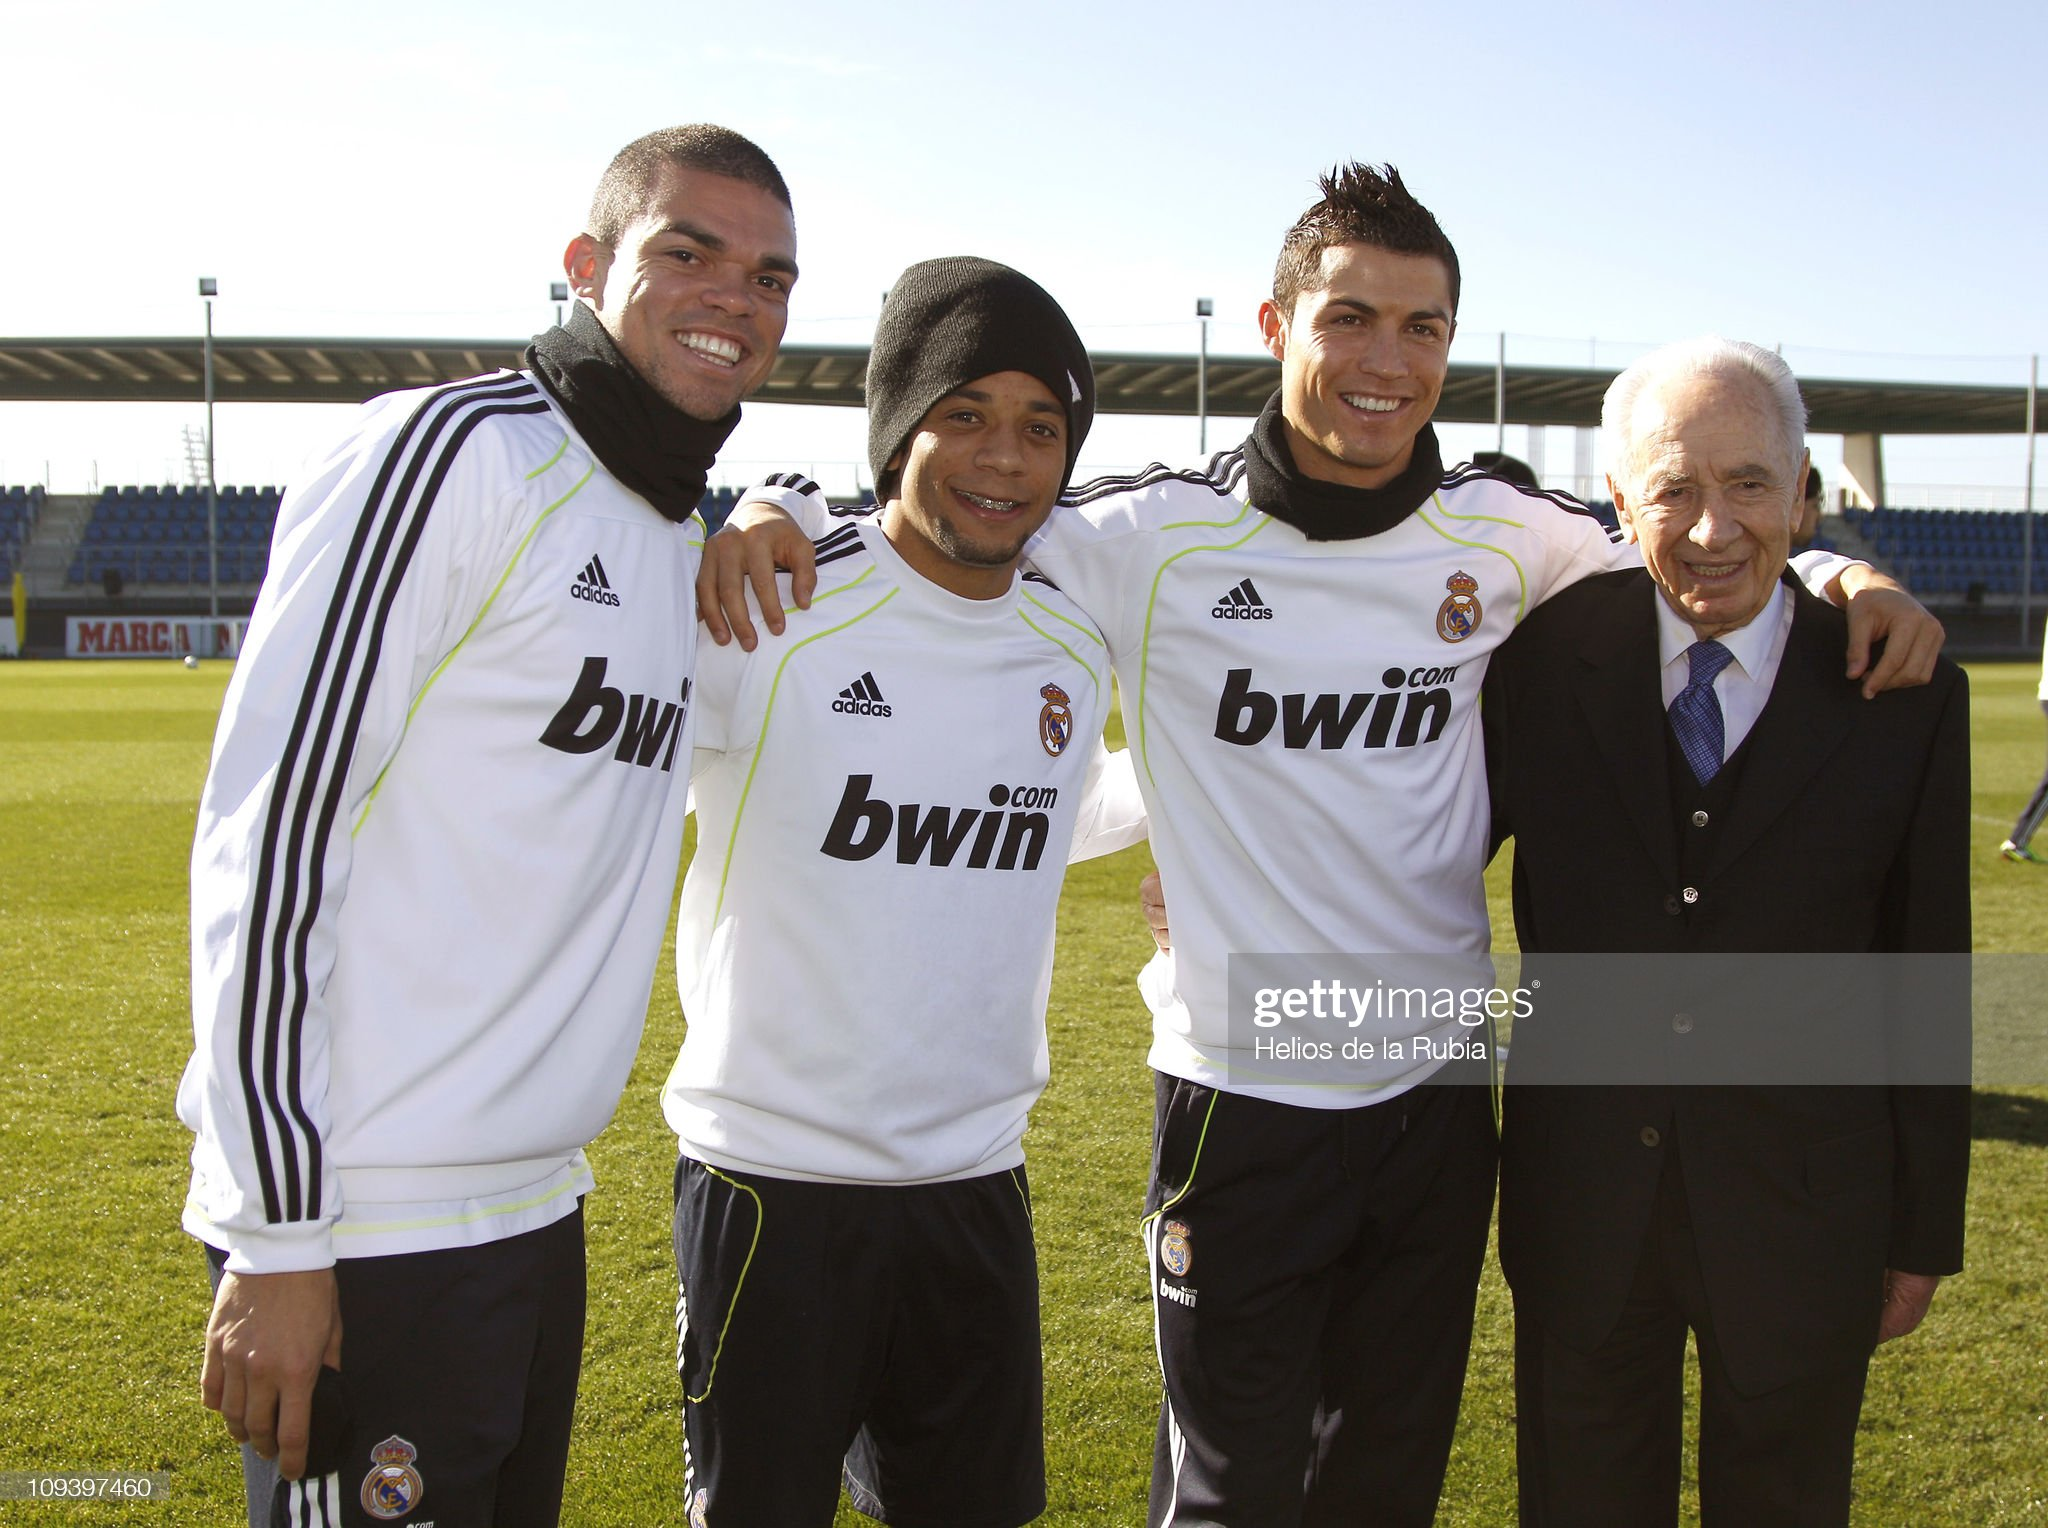 shimon-peress-president-of-israel-pose-with-real-madrid-players-pepe-picture-id109397460?s=2048x2048